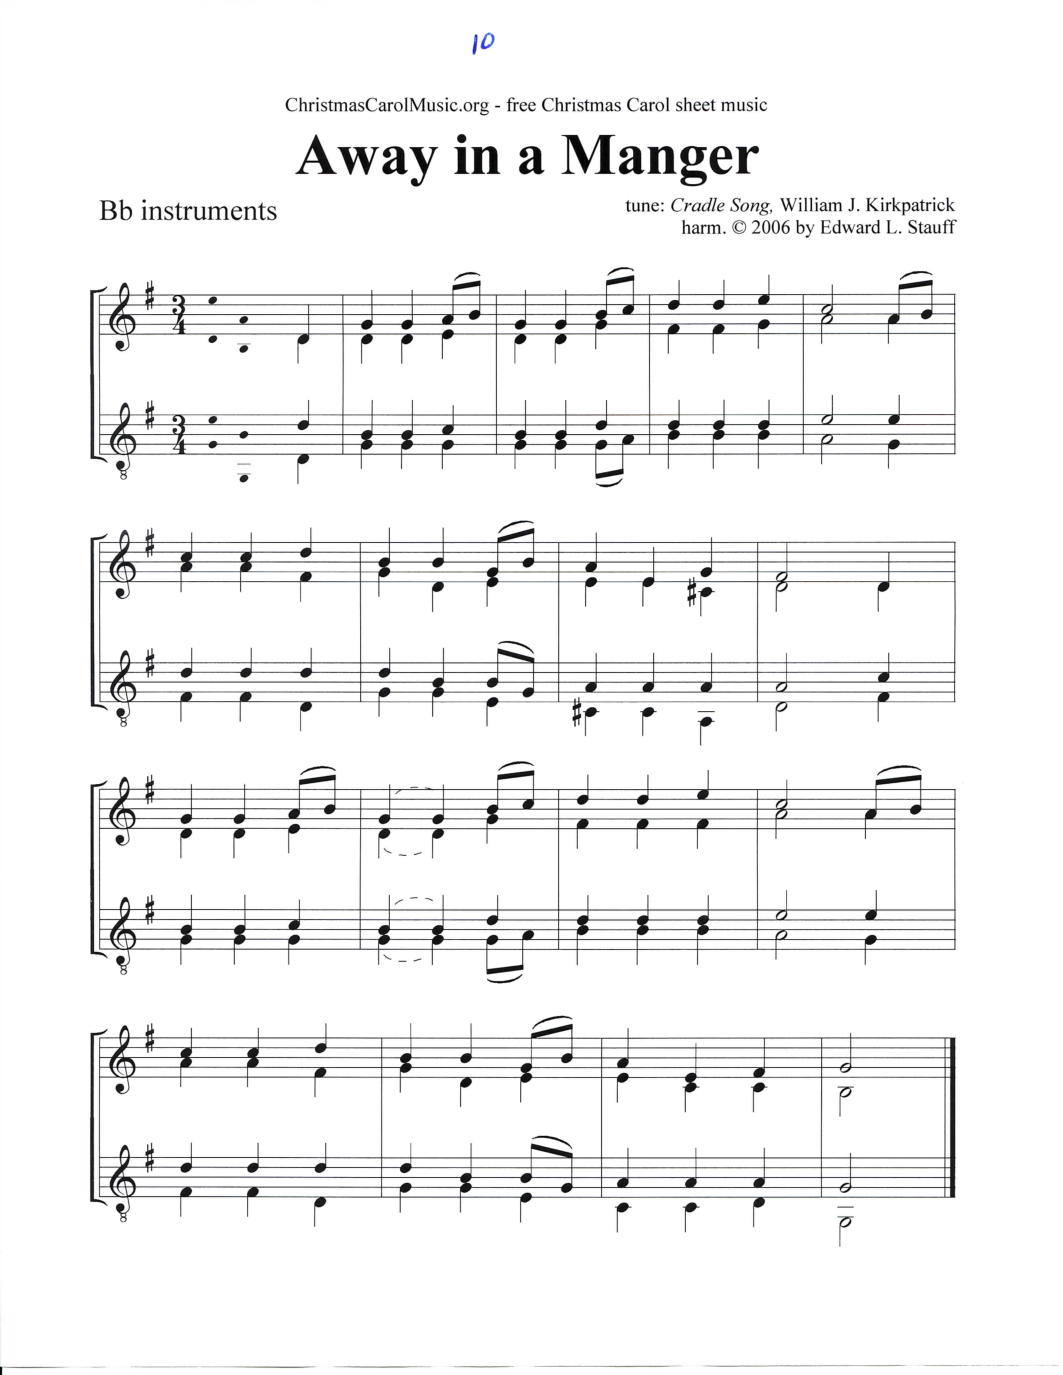 A Christmas Eve Songbook - Sheet Music Free Printable For 45 Beloved - Free Printable Christmas Music Sheets Piano